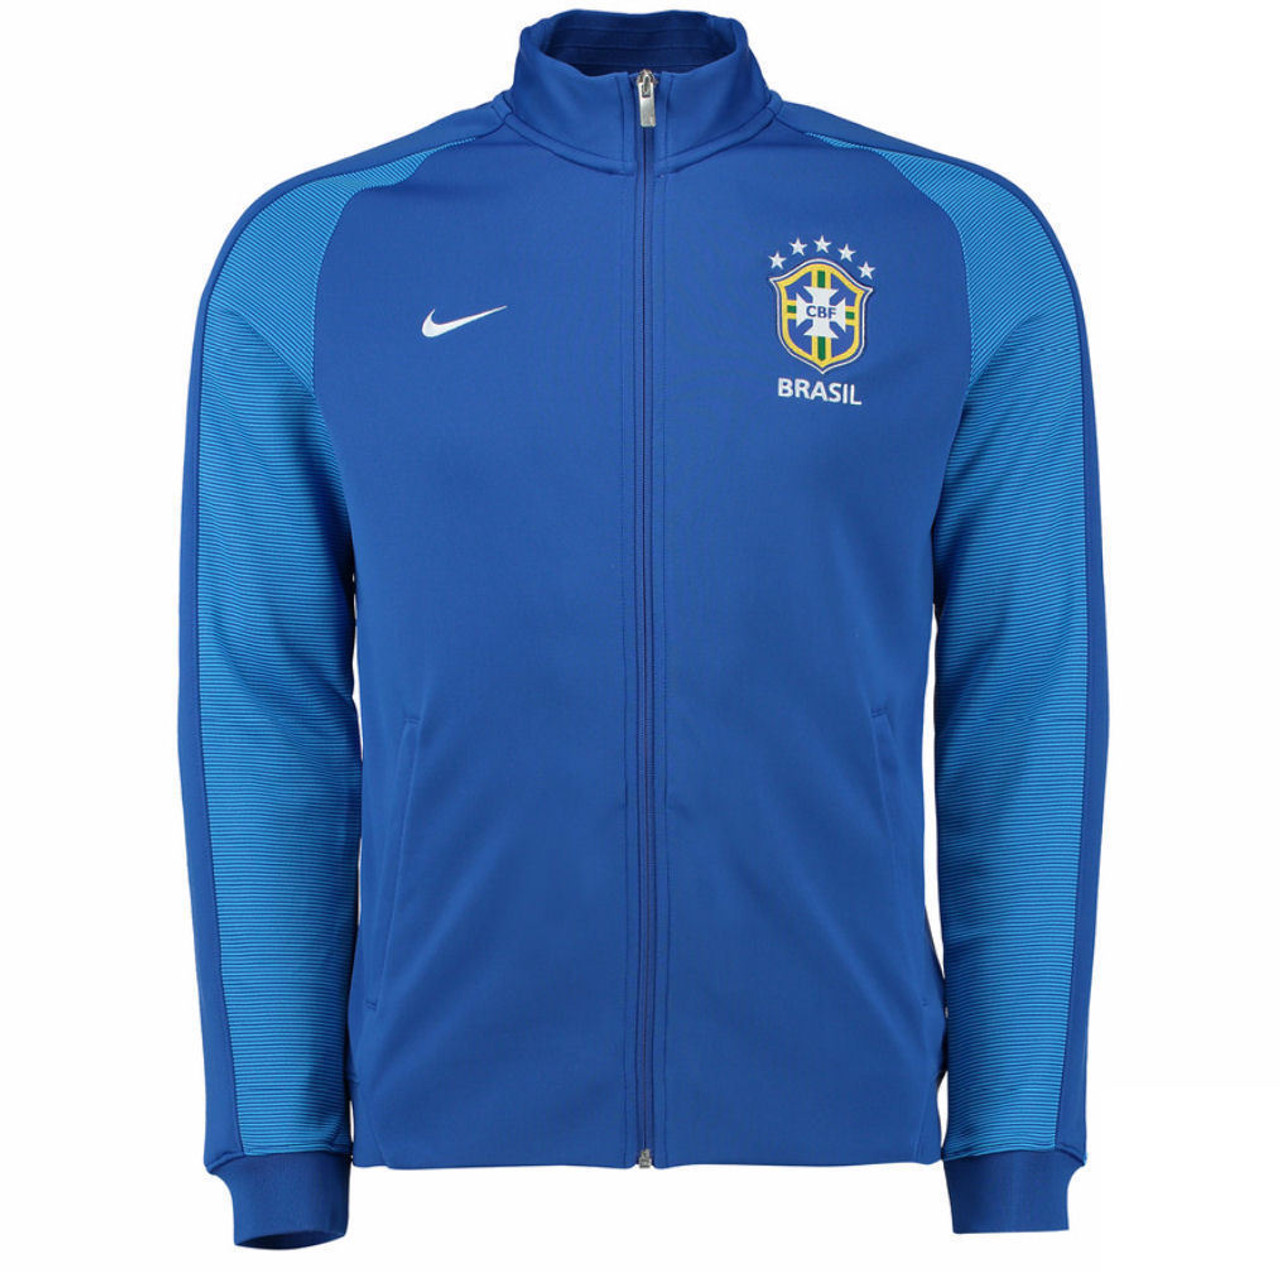 082c67958c Nike Brazil 2016 17 Authentic N98 Track Jacket - Blue White (52818) - ohp  soccer